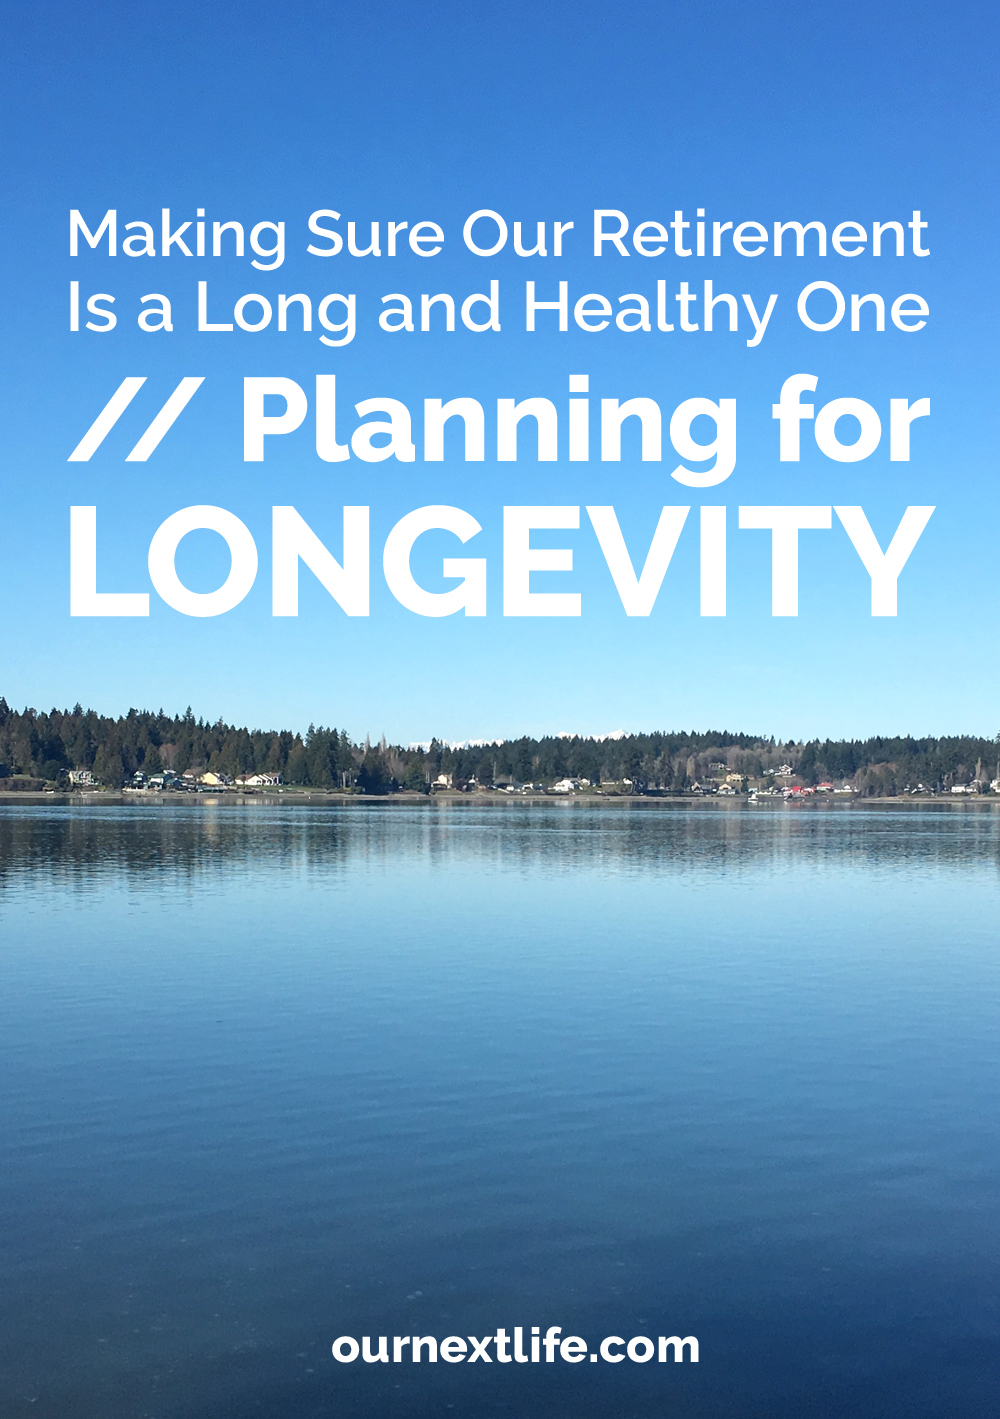 Planning for Good Health and Longevity in Retirement // longevity, lifestyle design, good health